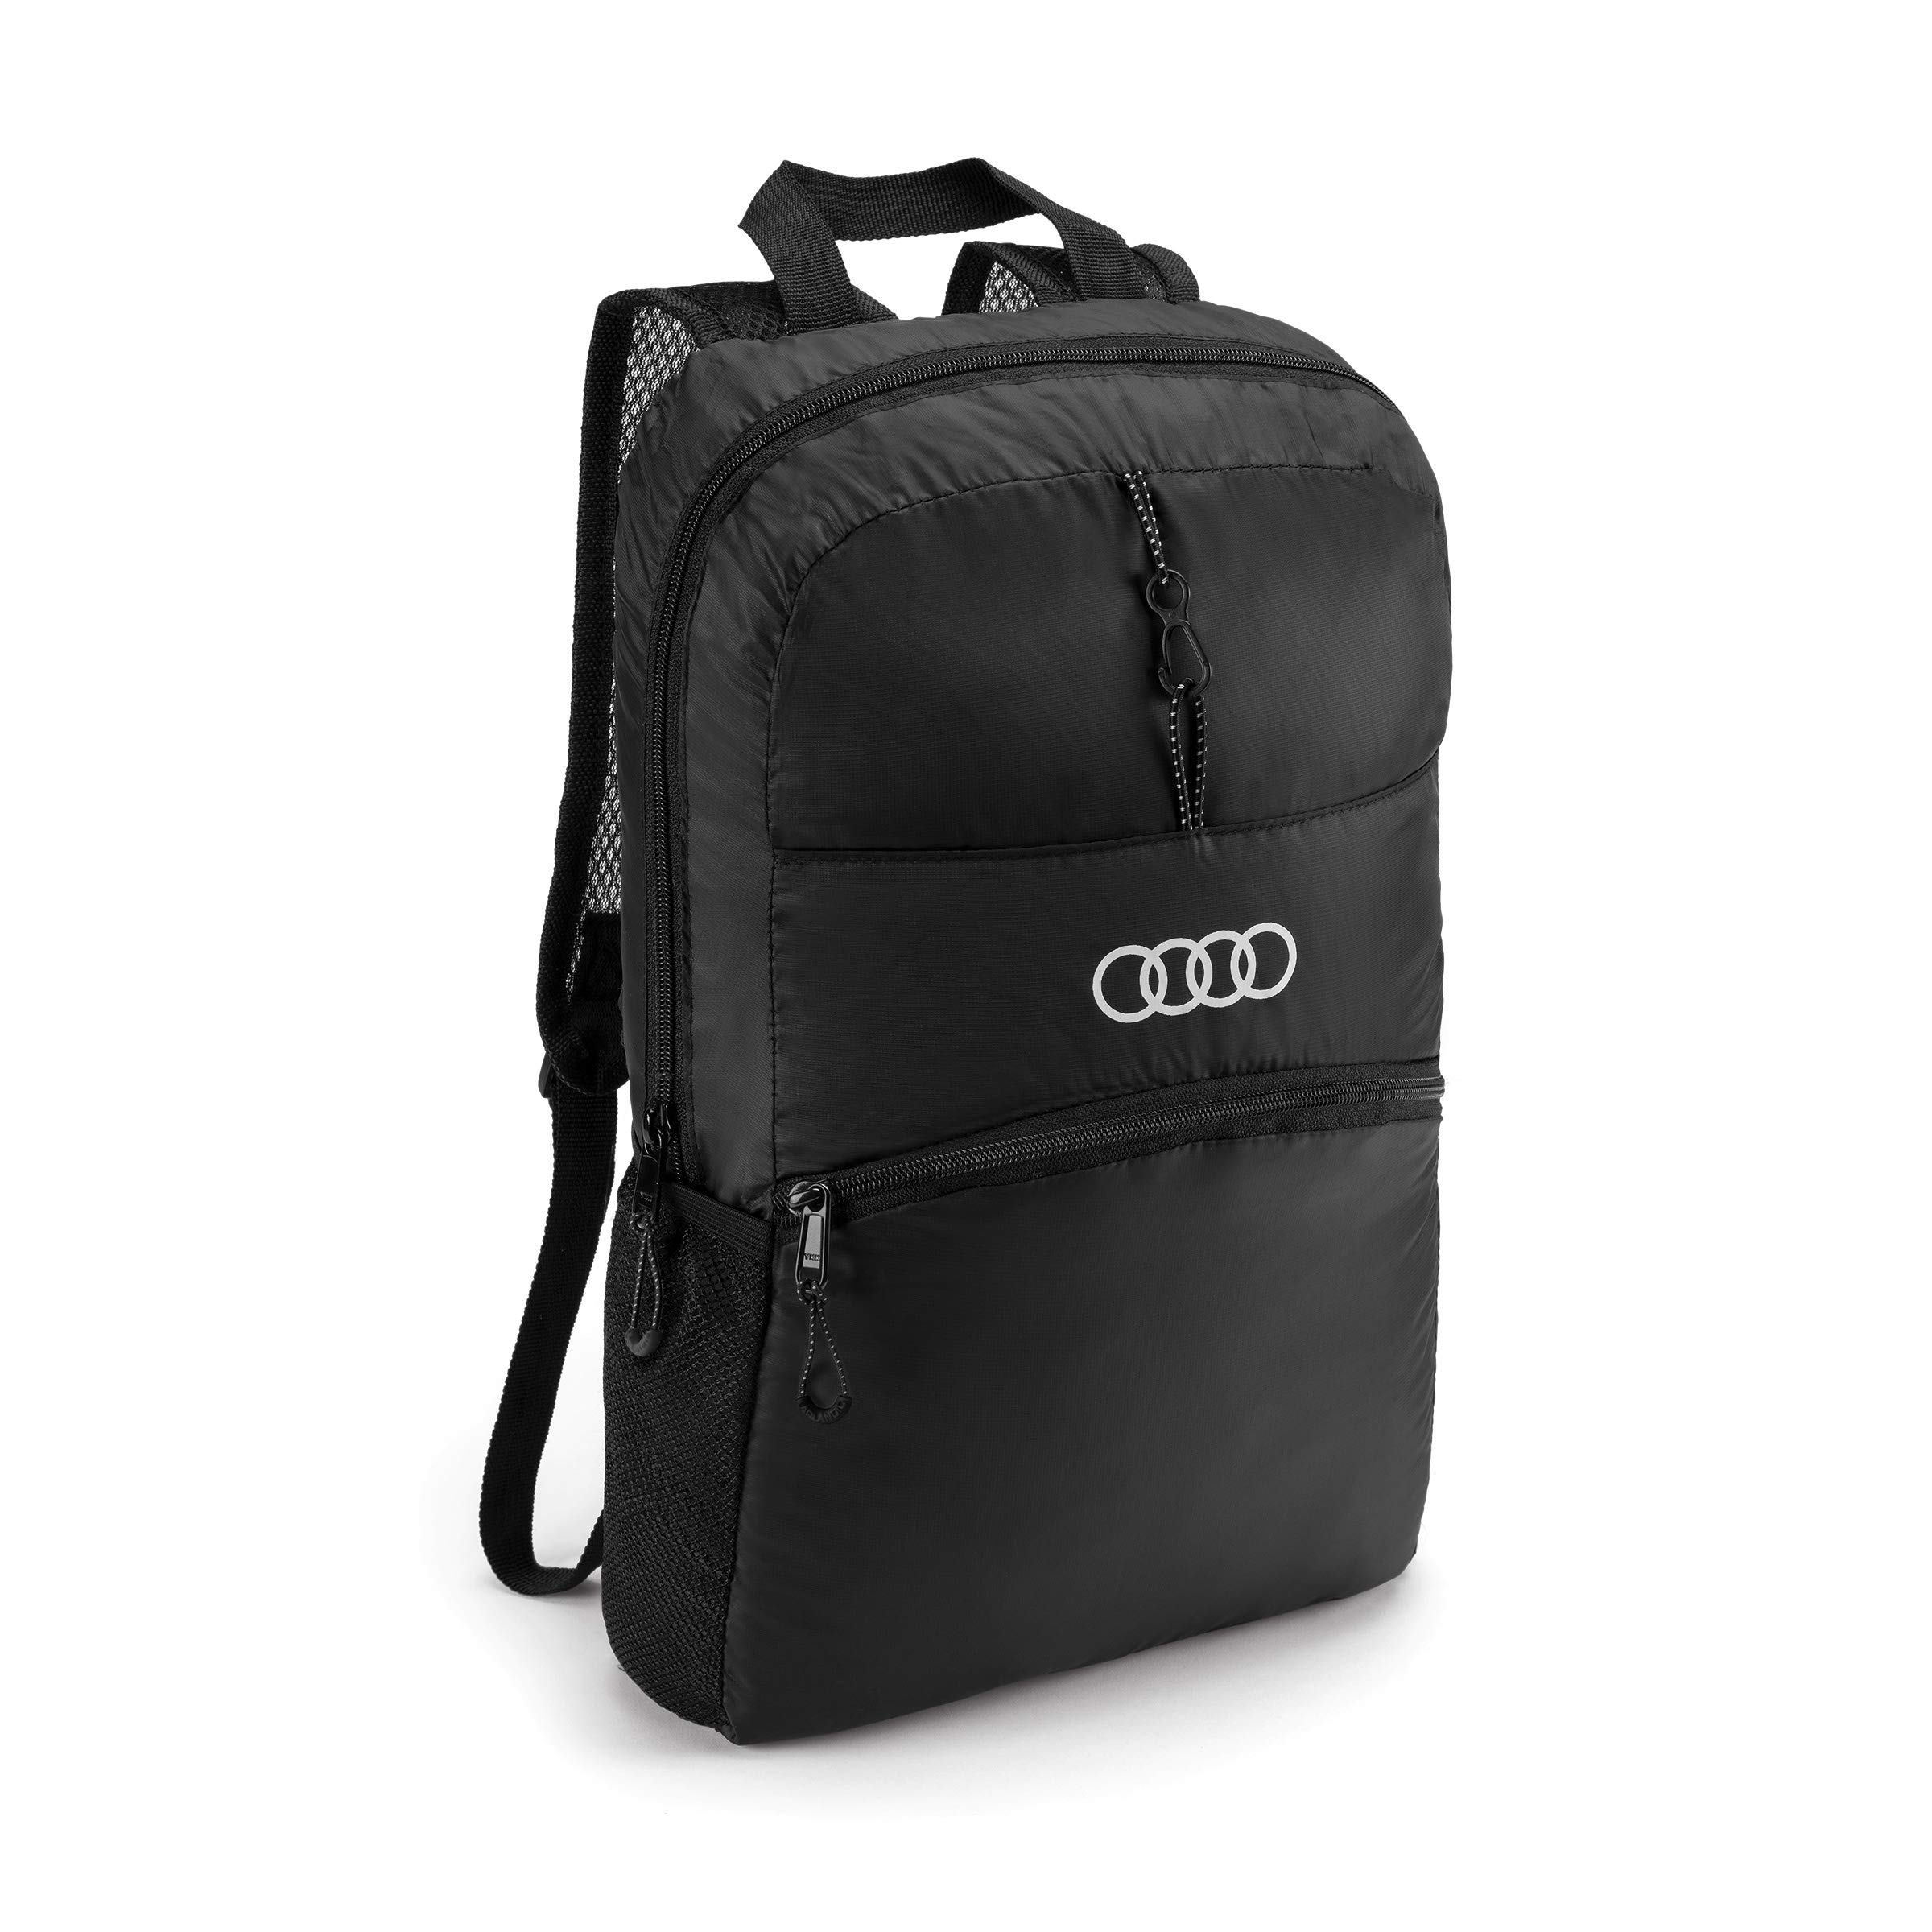 Audi collection Audi 3151901700 Foldable Backpack